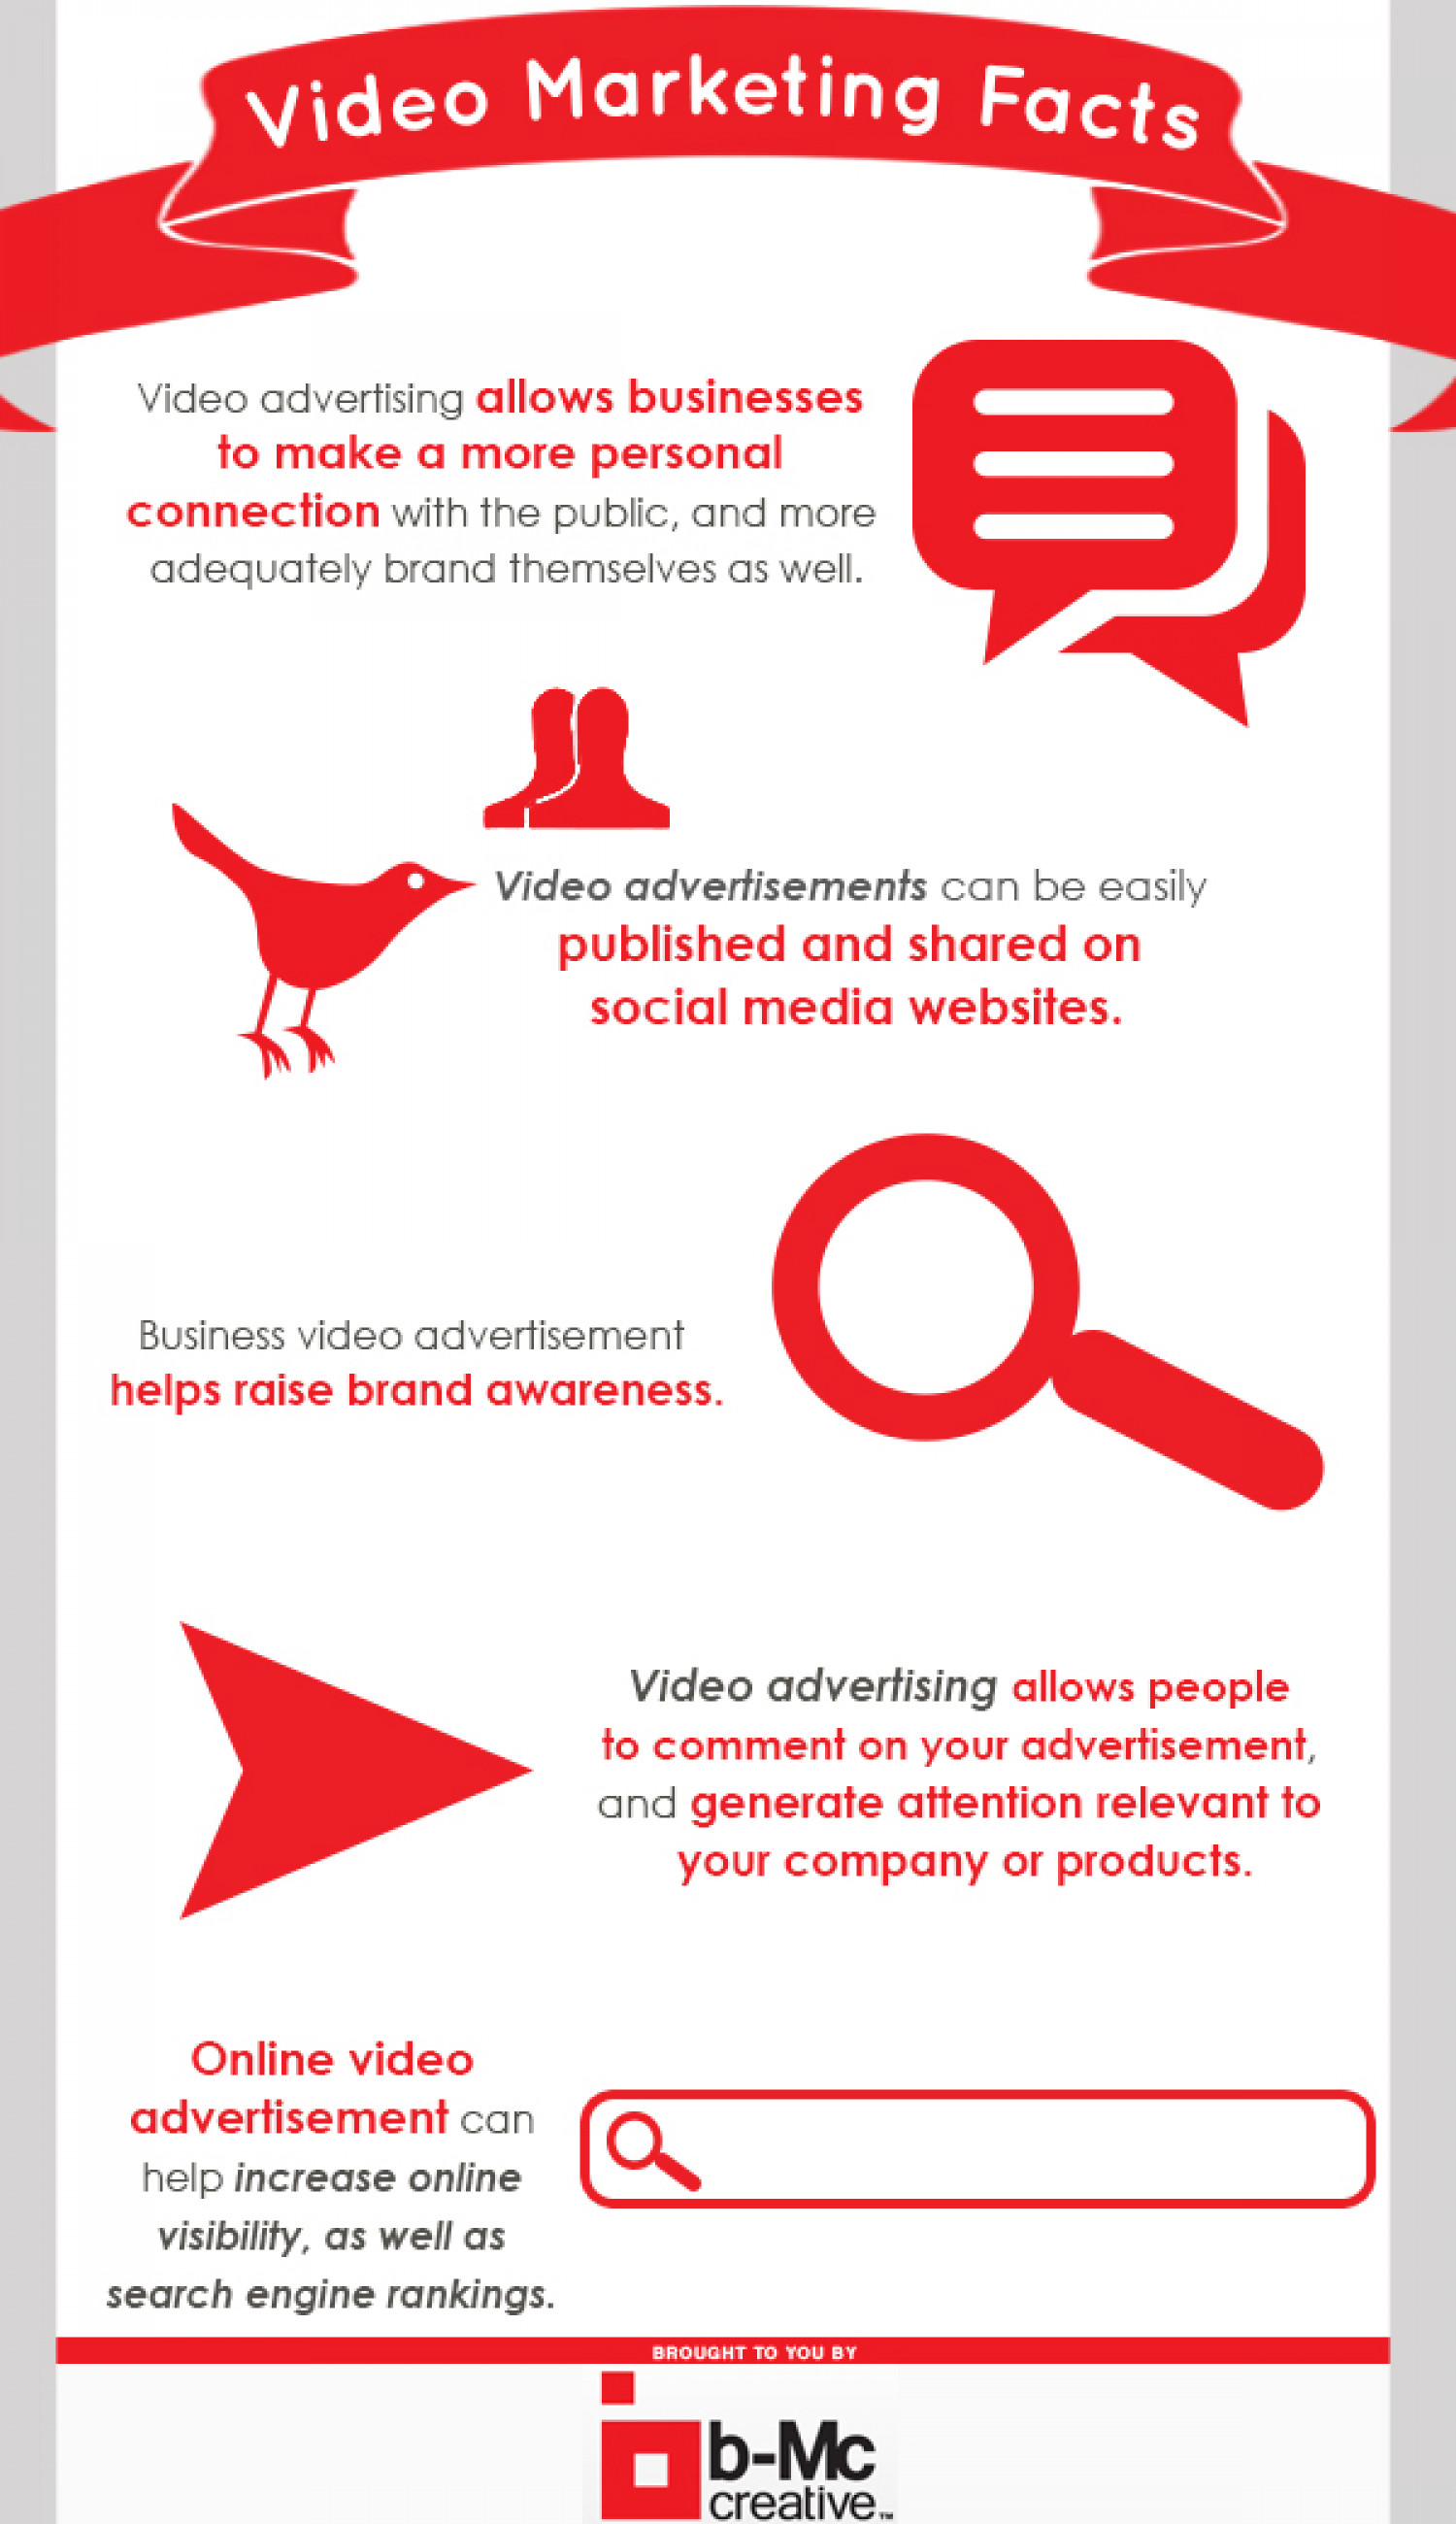 Video Marketing Facts Infographic